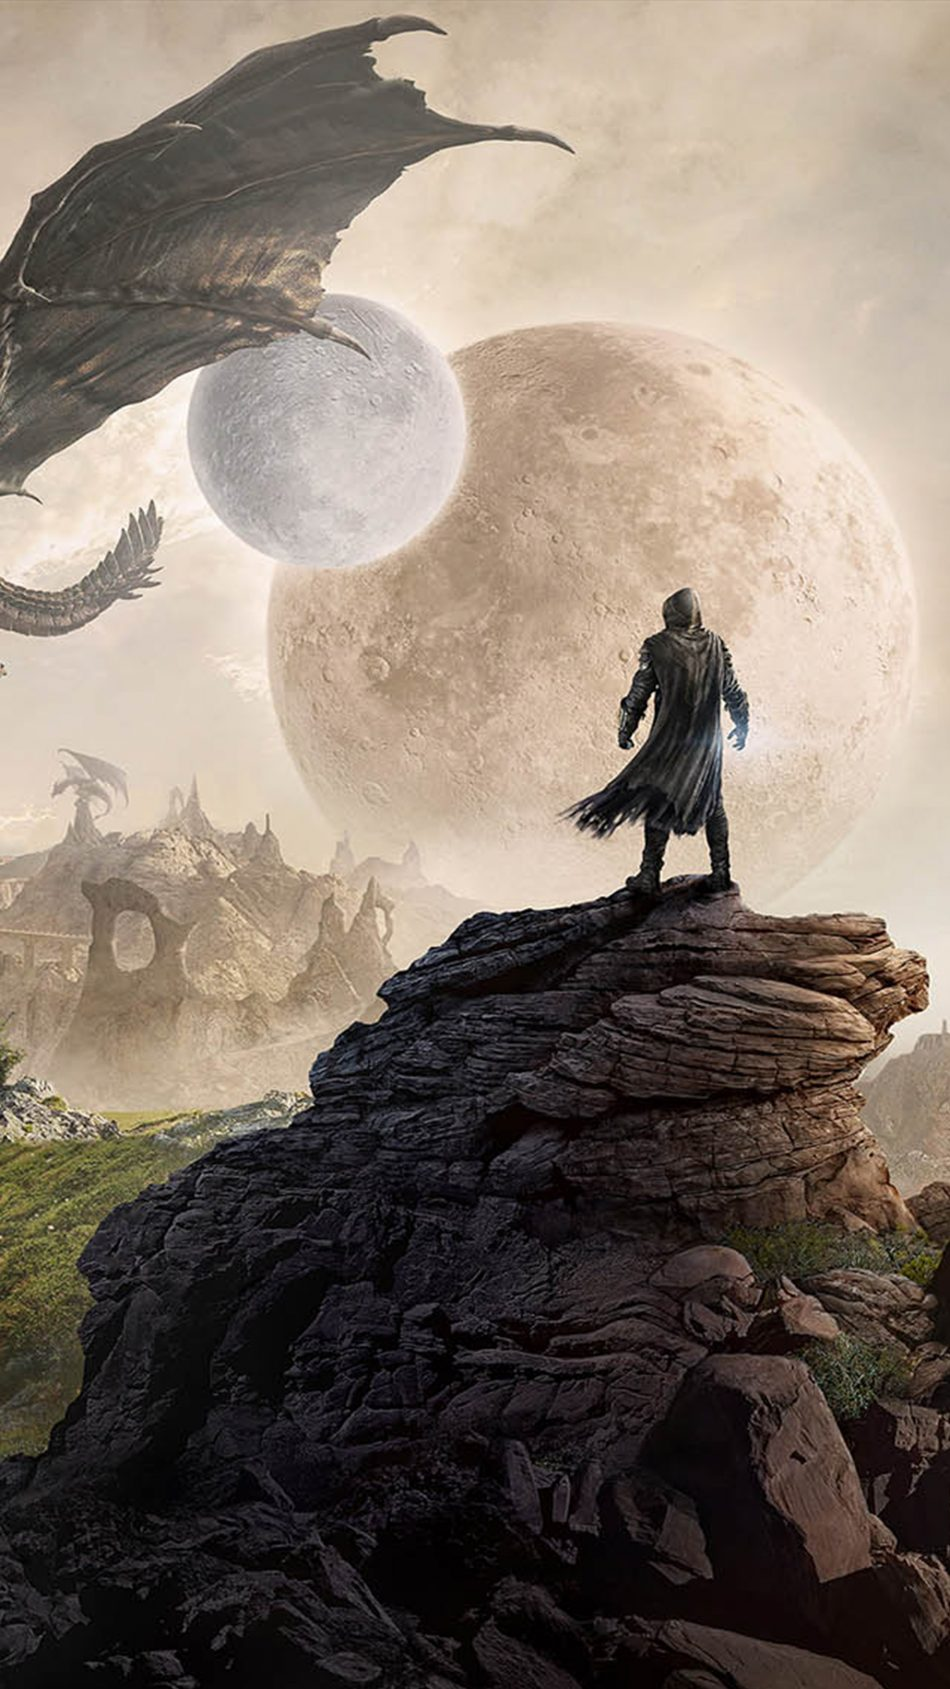 The Elder Scrolls Online Elsweyr 4K Ultra HD Mobile Wallpaper